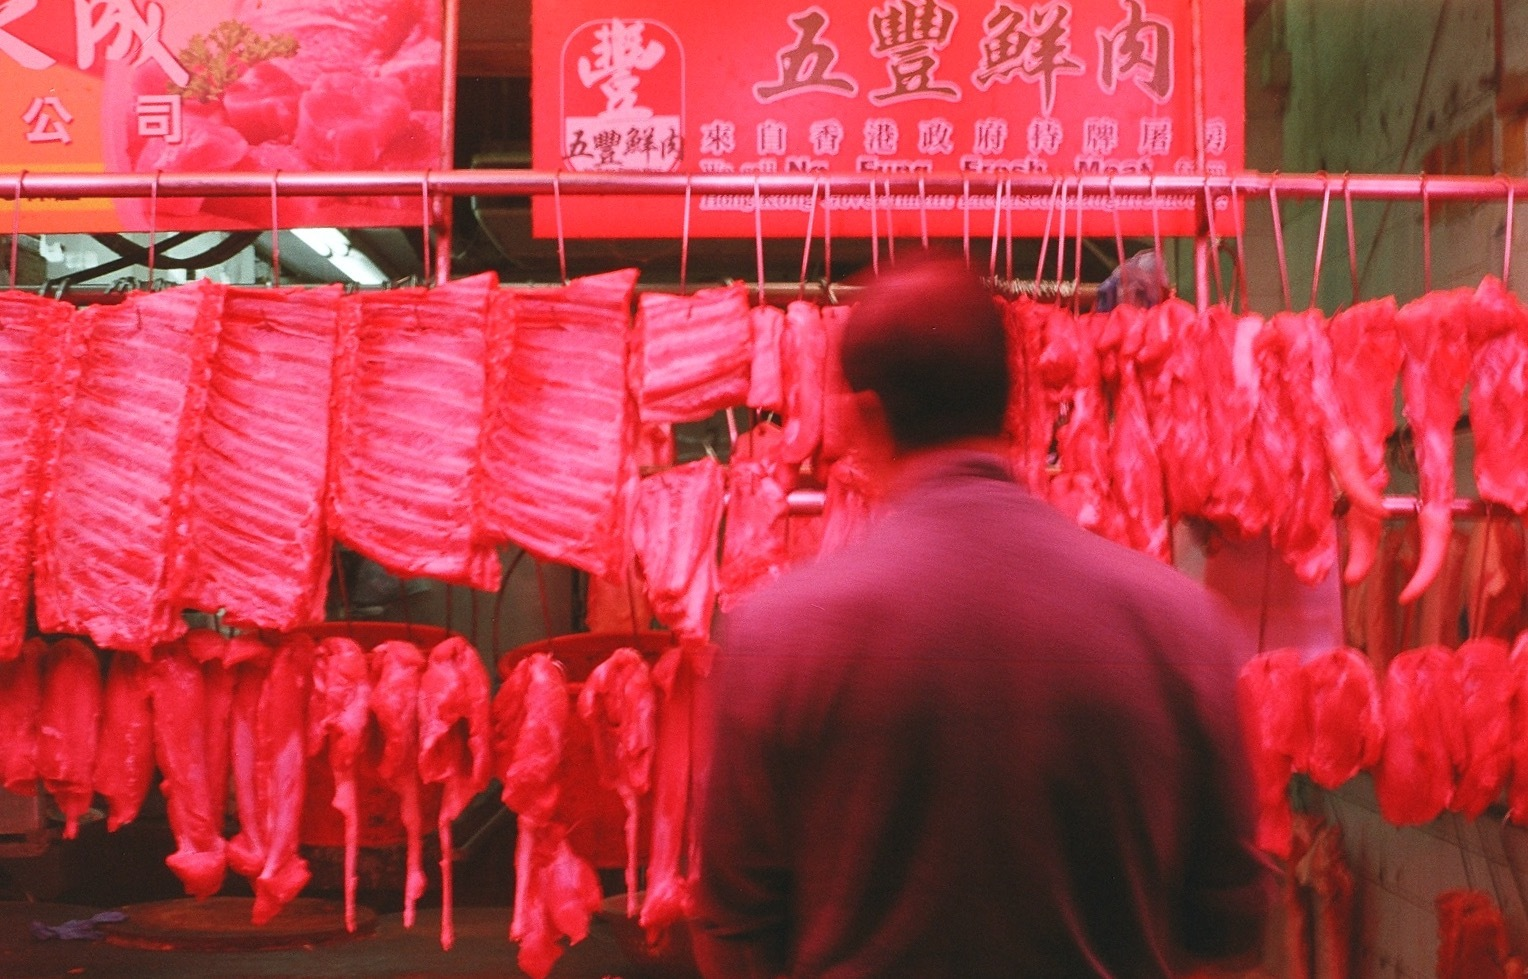 A film photo I captured in Hong Kong and included in my portfolio. It is of a man looking at hanging pieces of meat.